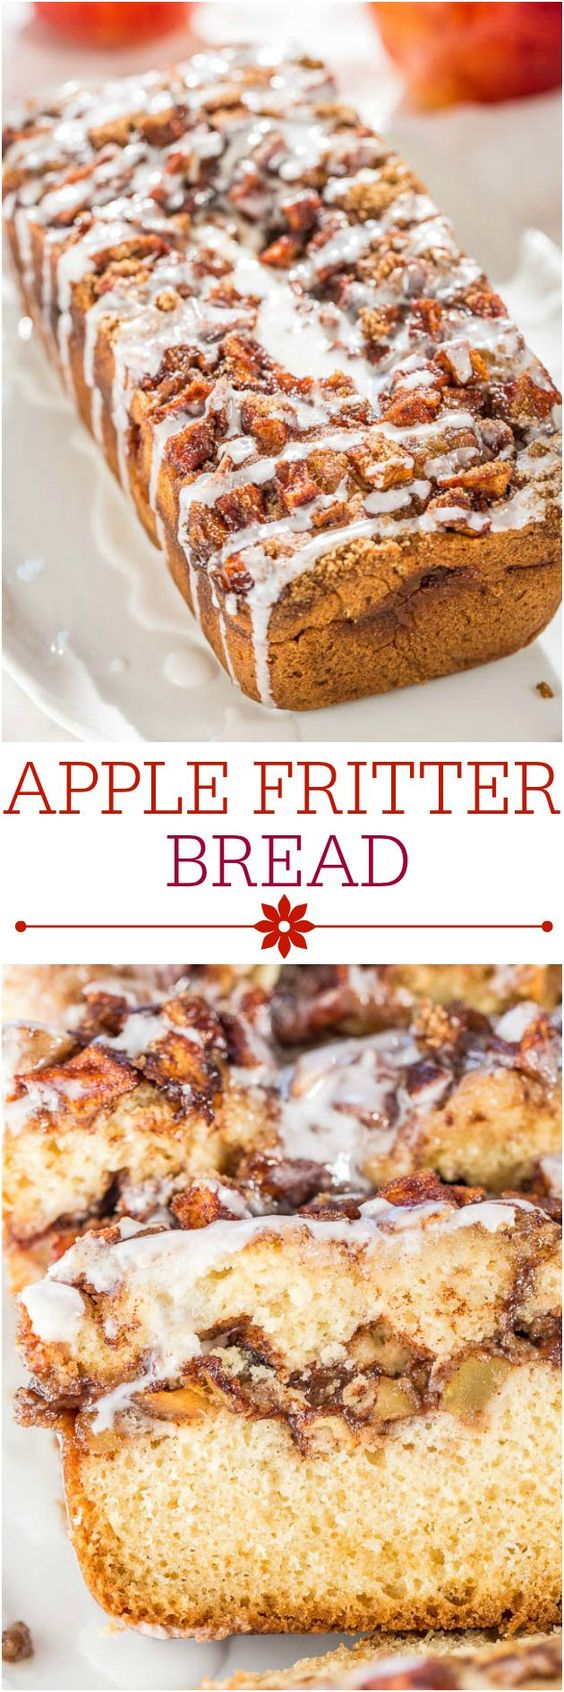 Apple Fritter Bread | Apples, My family and Ovens